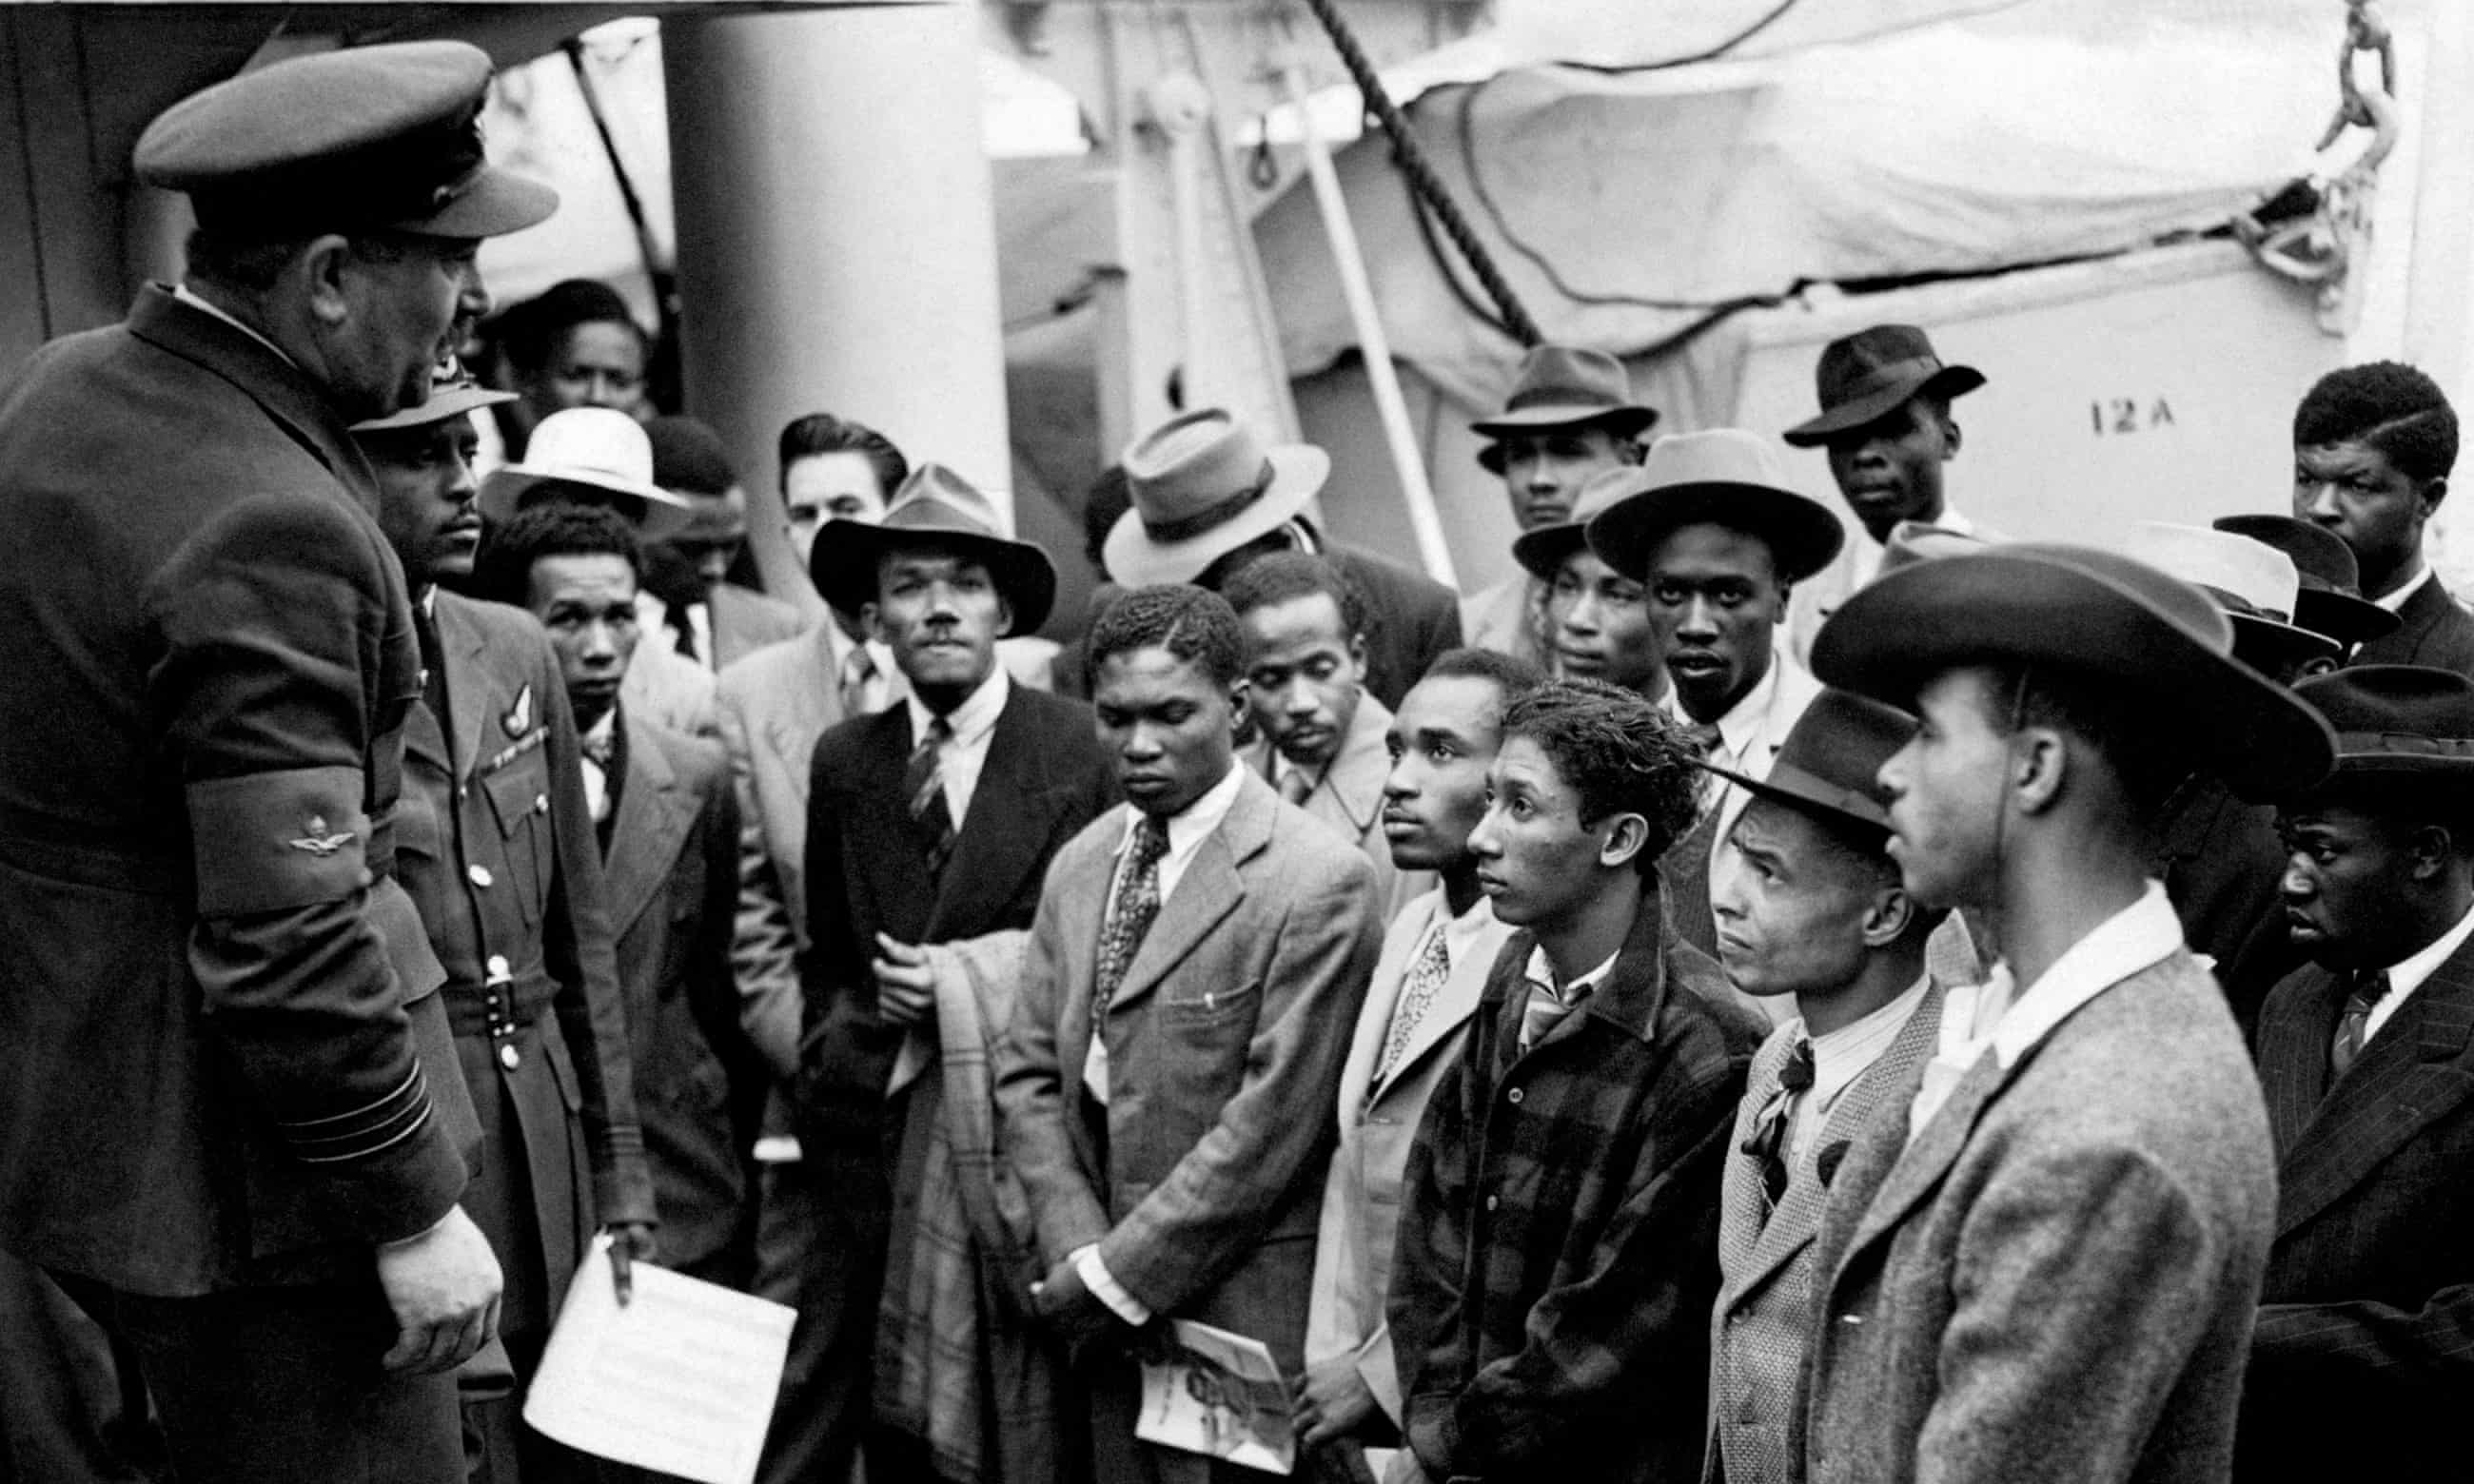 Empire Windrush migrants arrive at Tilbury in 1948. Photograph: PA